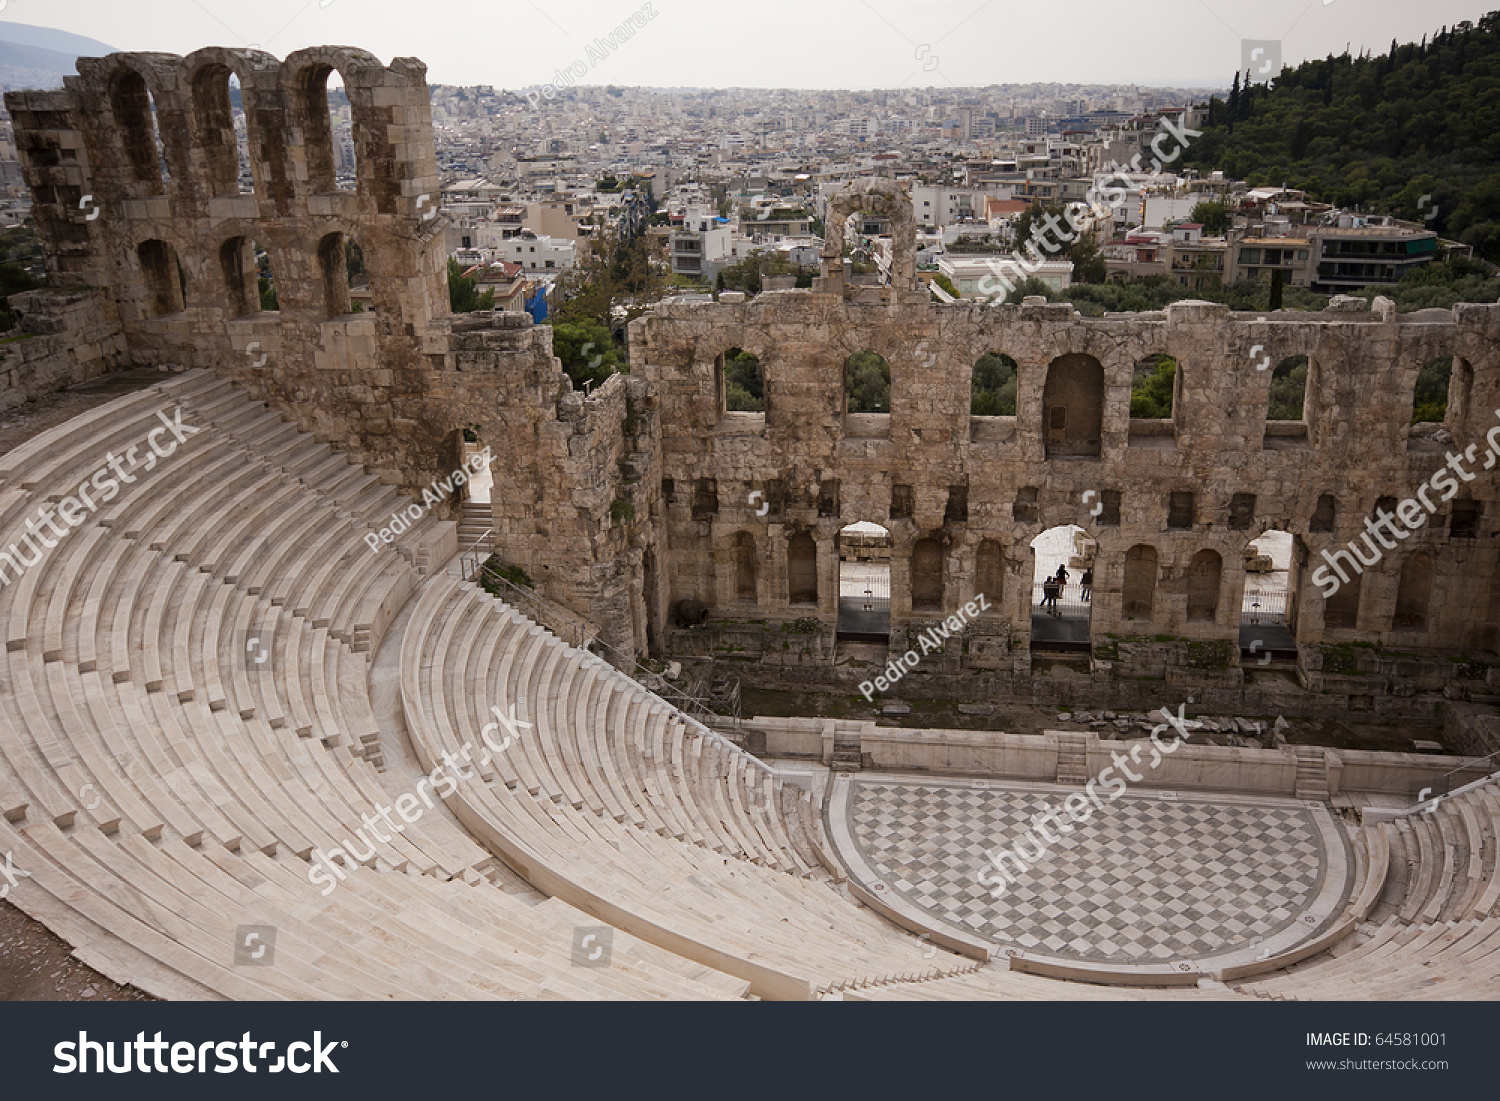 a paper on the theater of dionysus The theatre of dionysus eleuthereus is a major theatre in athens, considered to be the world's first theatre, built at the foot of the athenian acropolis dedicated to dionysus, the god of plays and wine (among other things),.